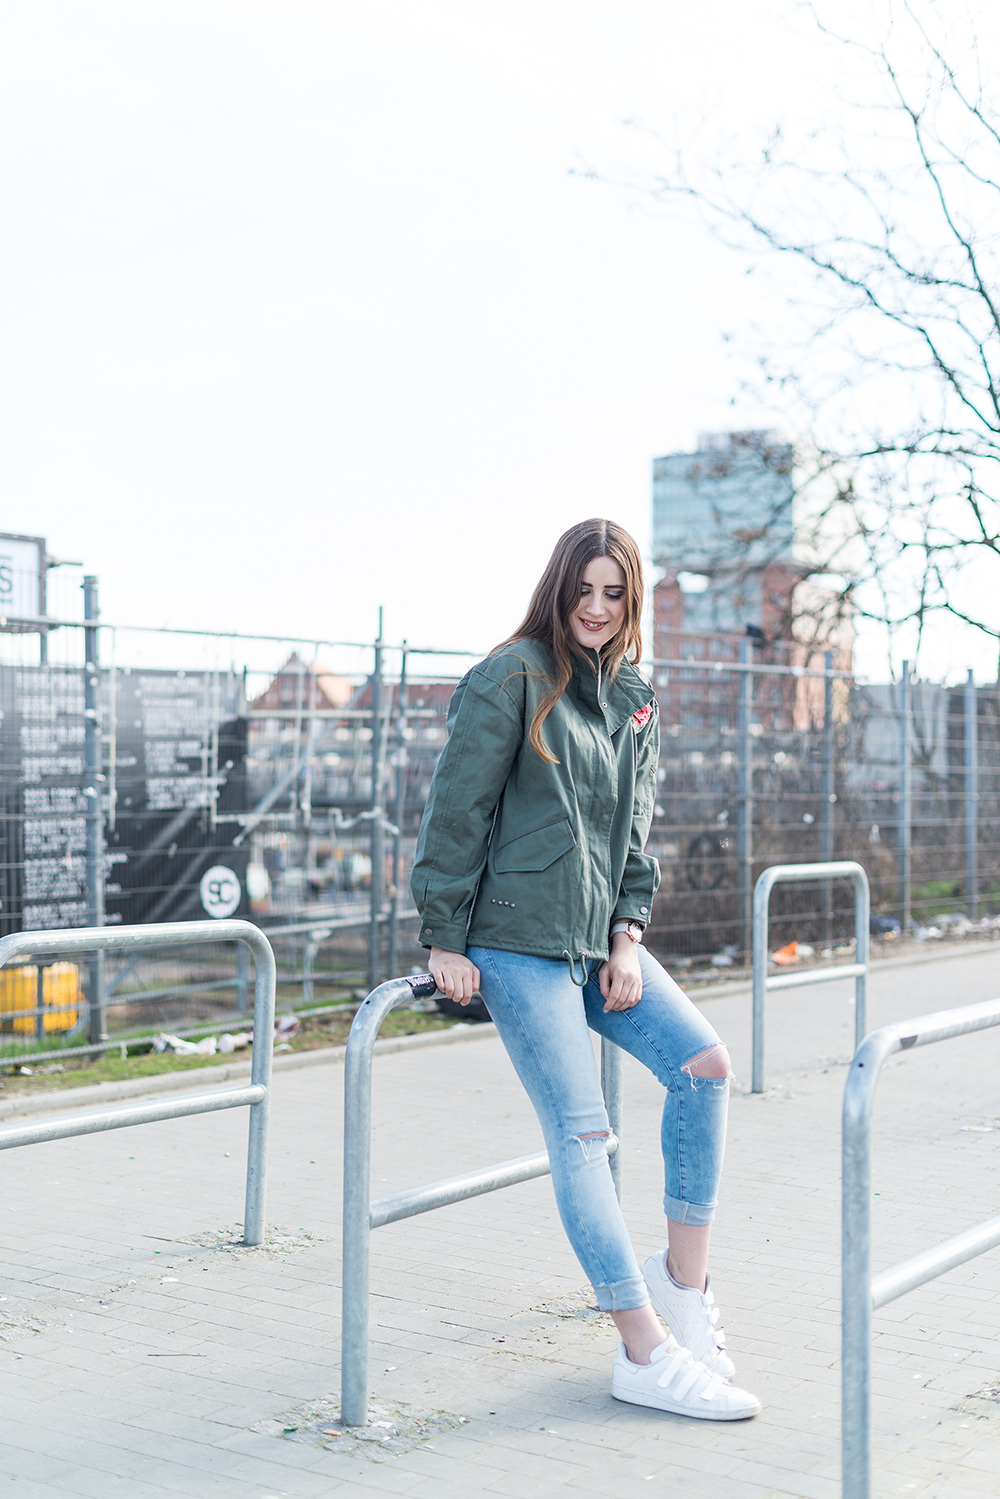 Modeblog-Deutschland-Deutsche-Mode-Mode-Influencer-Andrea-Funk-andysparkles-Berlin-Sneaker-Stan Smith